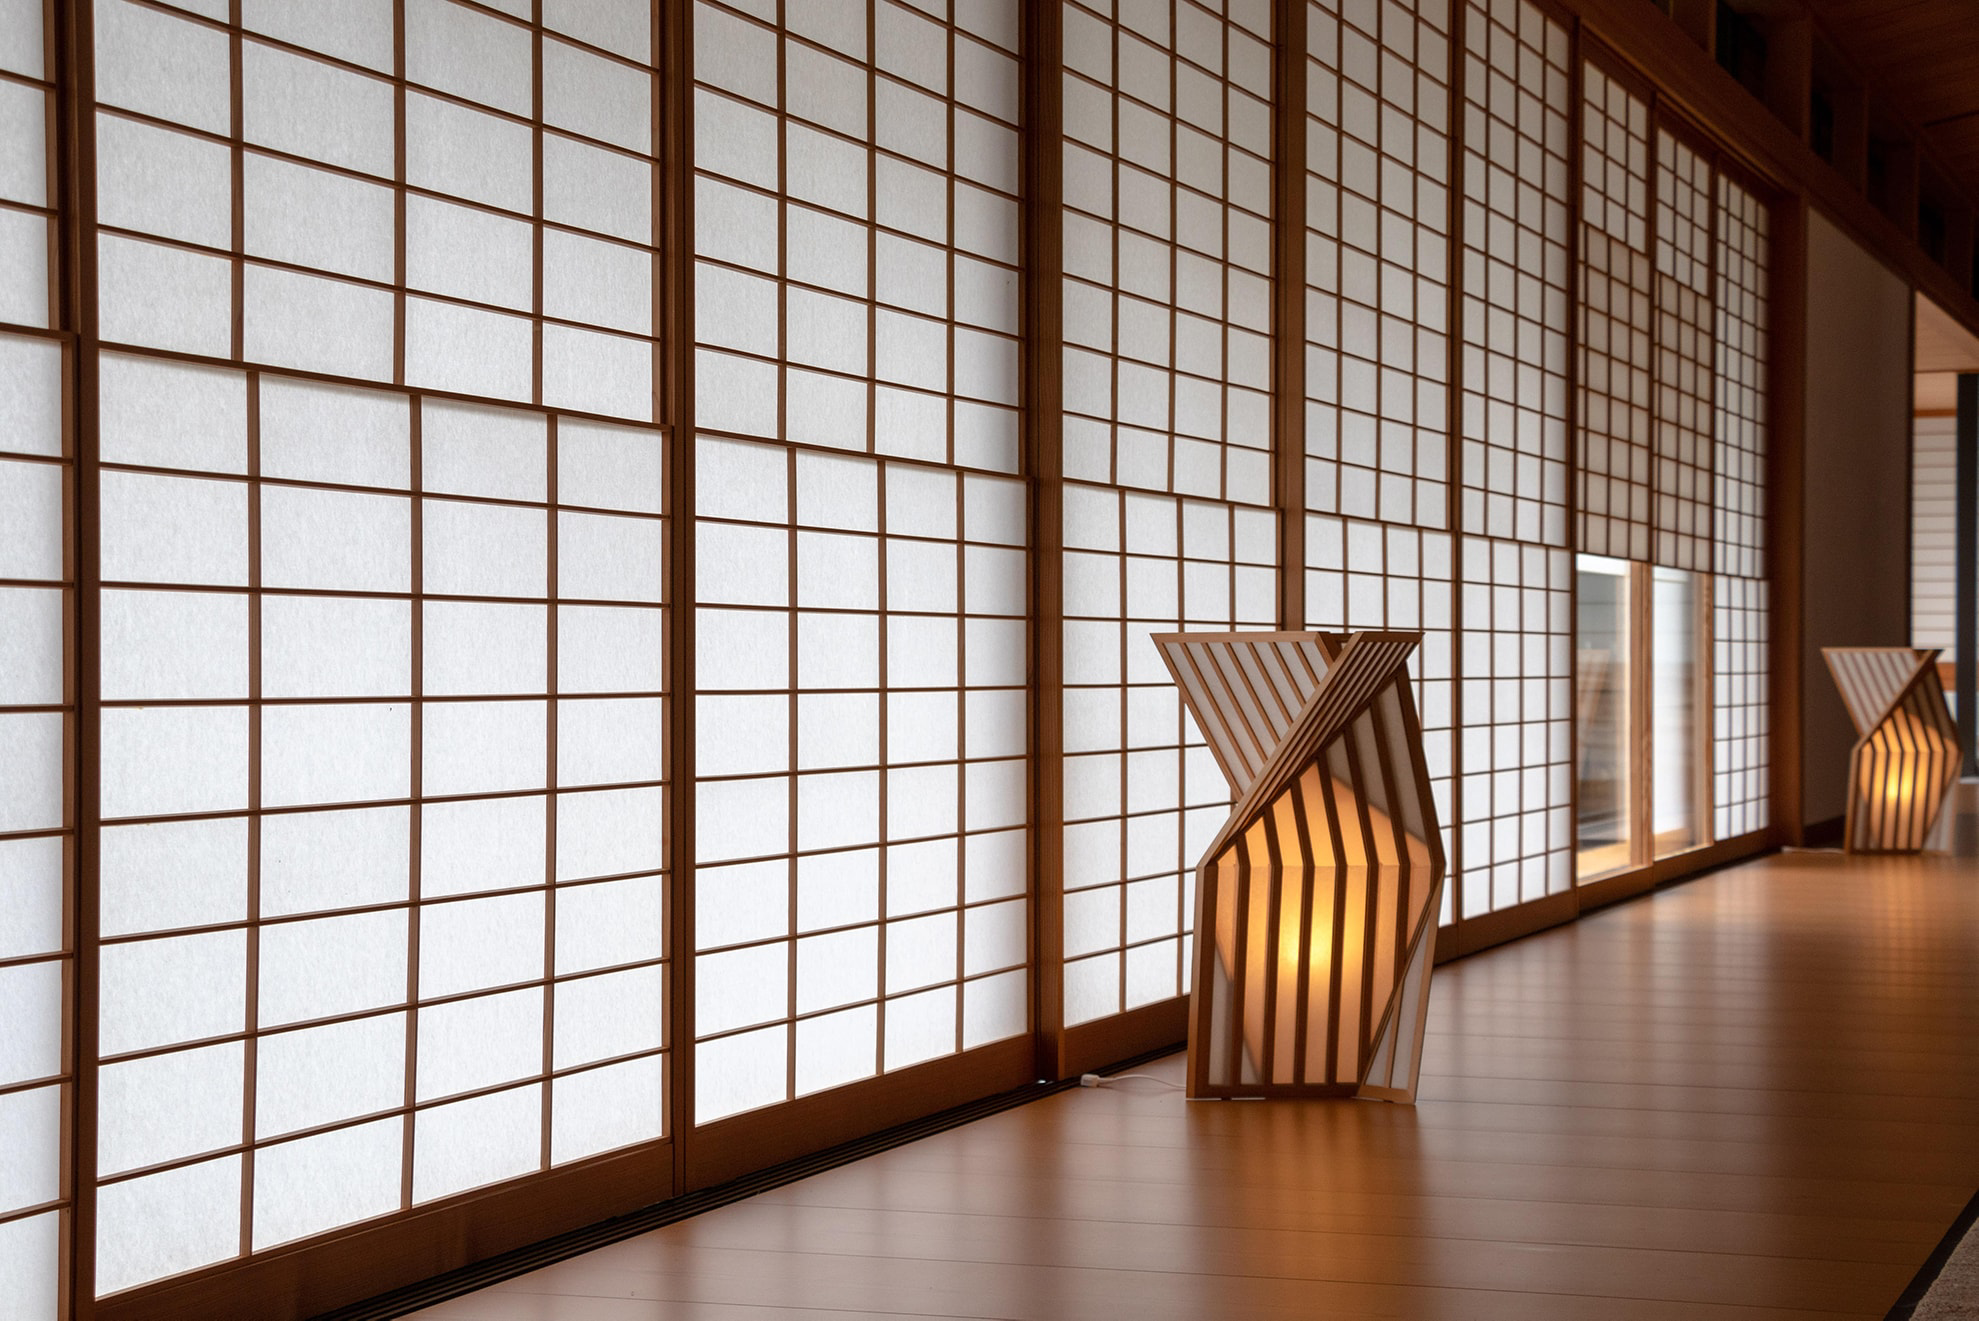 Picture of Japanese Style at Home